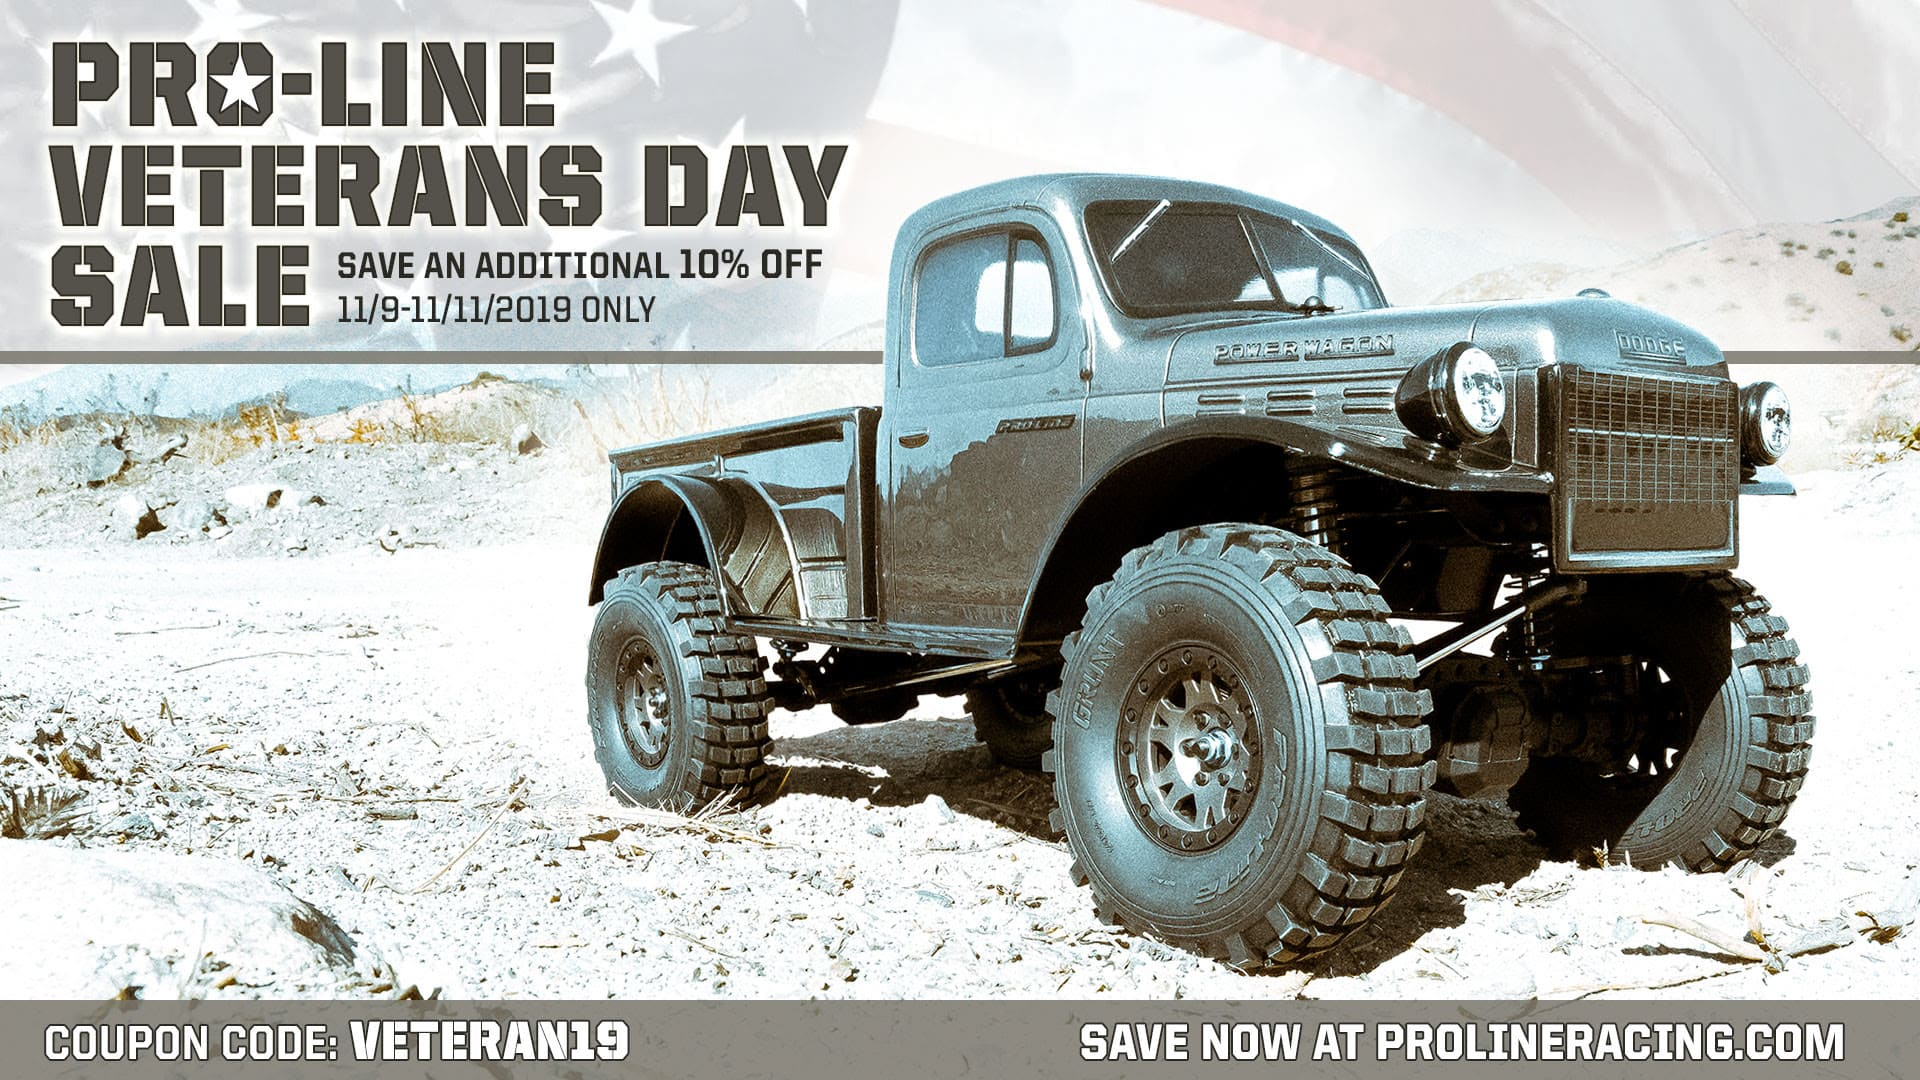 Celebrate Veterans Day with a 10% Discount from Pro-Line